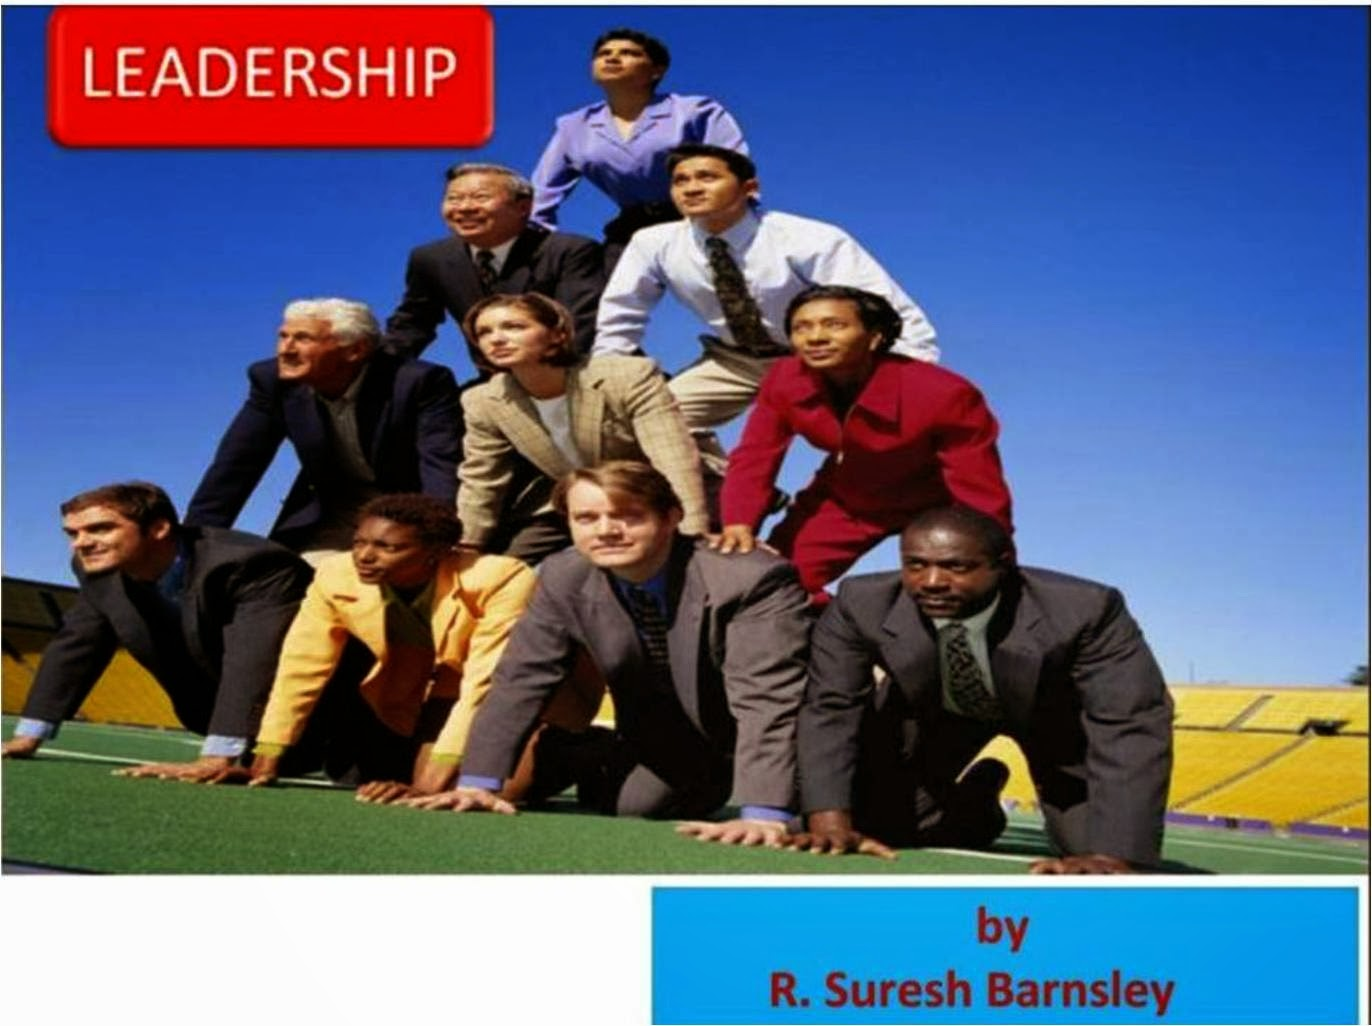 Leadership Training ppt